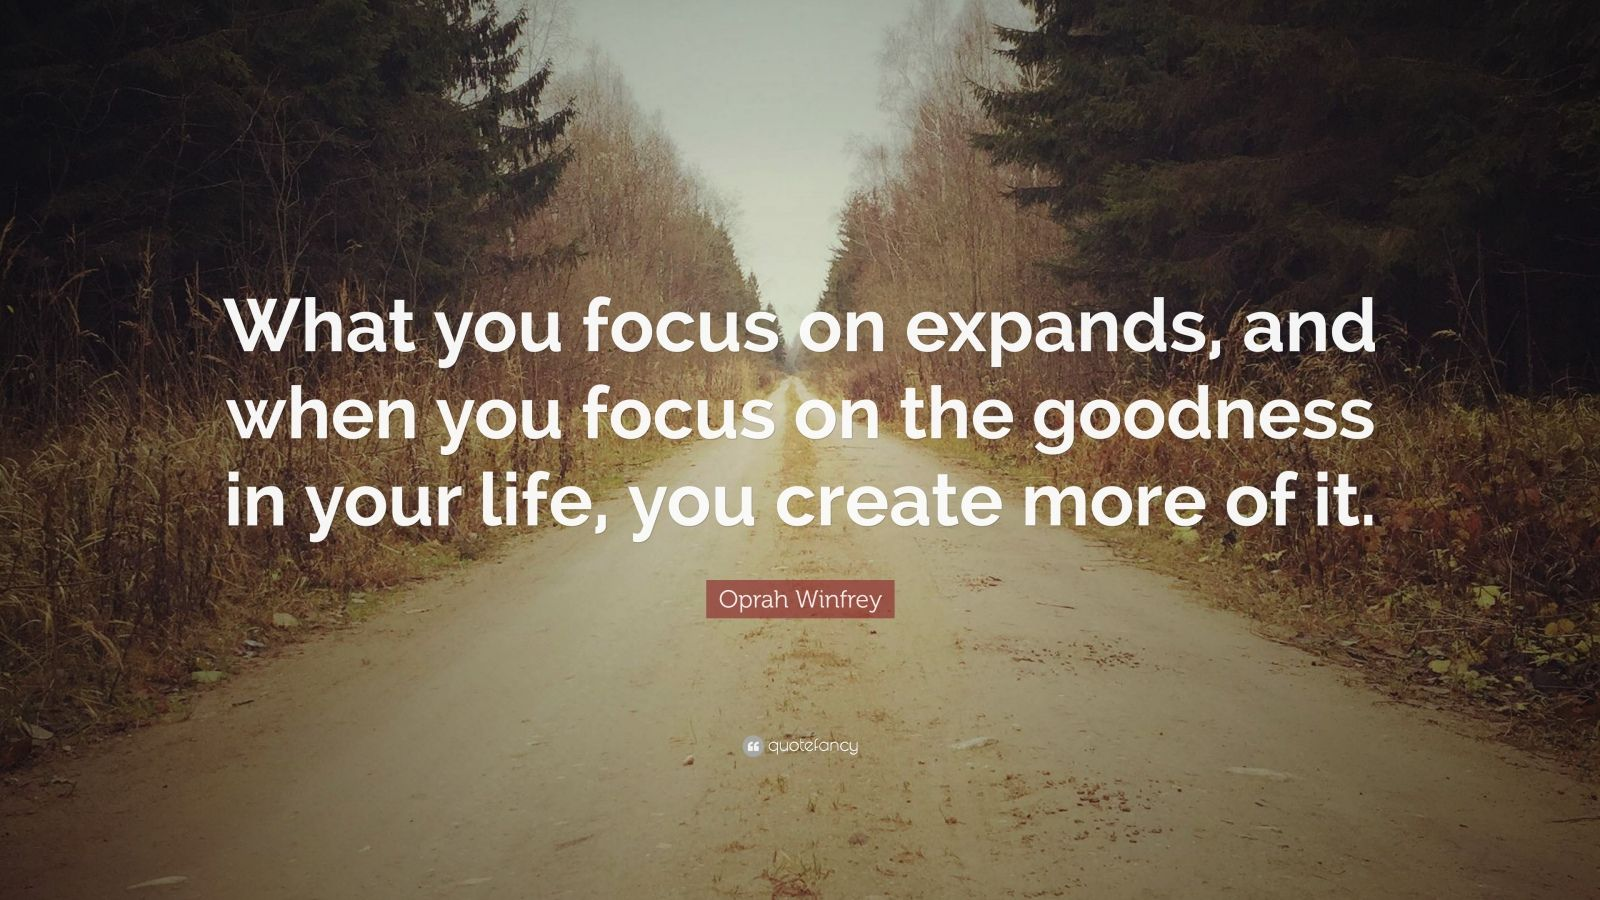 """Oprah Winfrey Quote: """"What you focus on expands, and when you focus on the goodness in your life, you create more of it."""""""